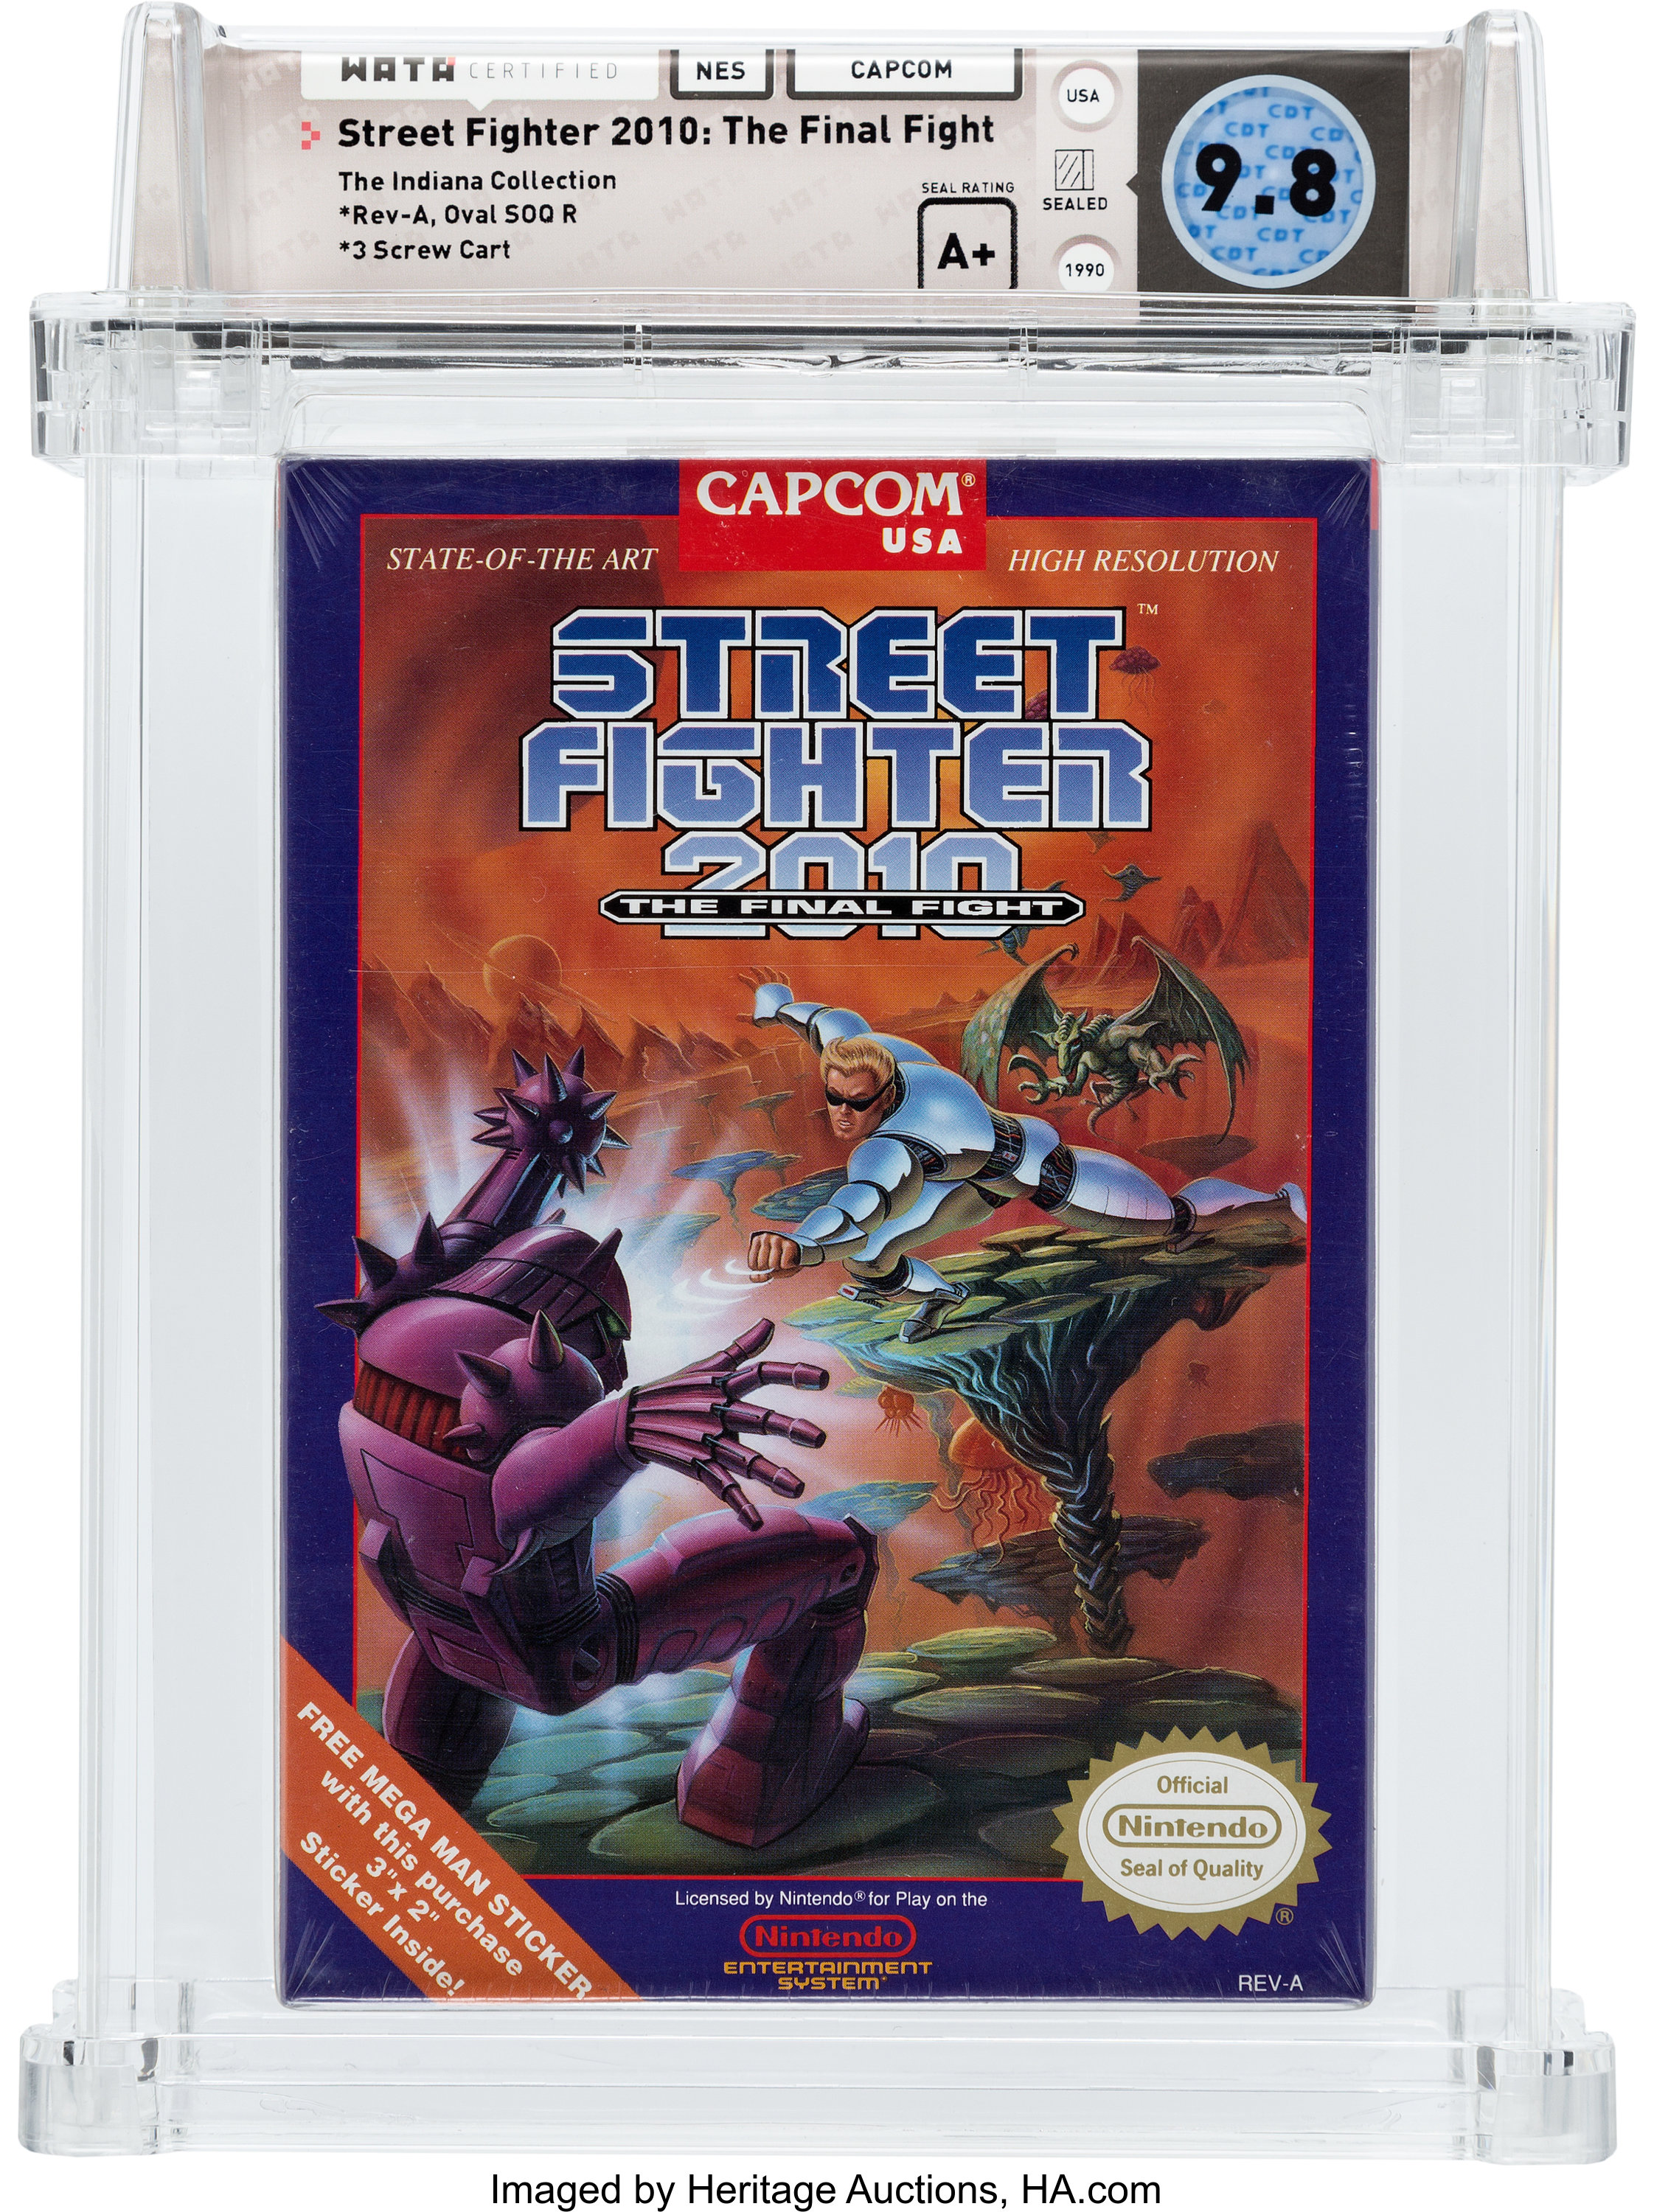 Street Fighter 2010 The Final Fight Nes Capcom 1990 Wata 9 8